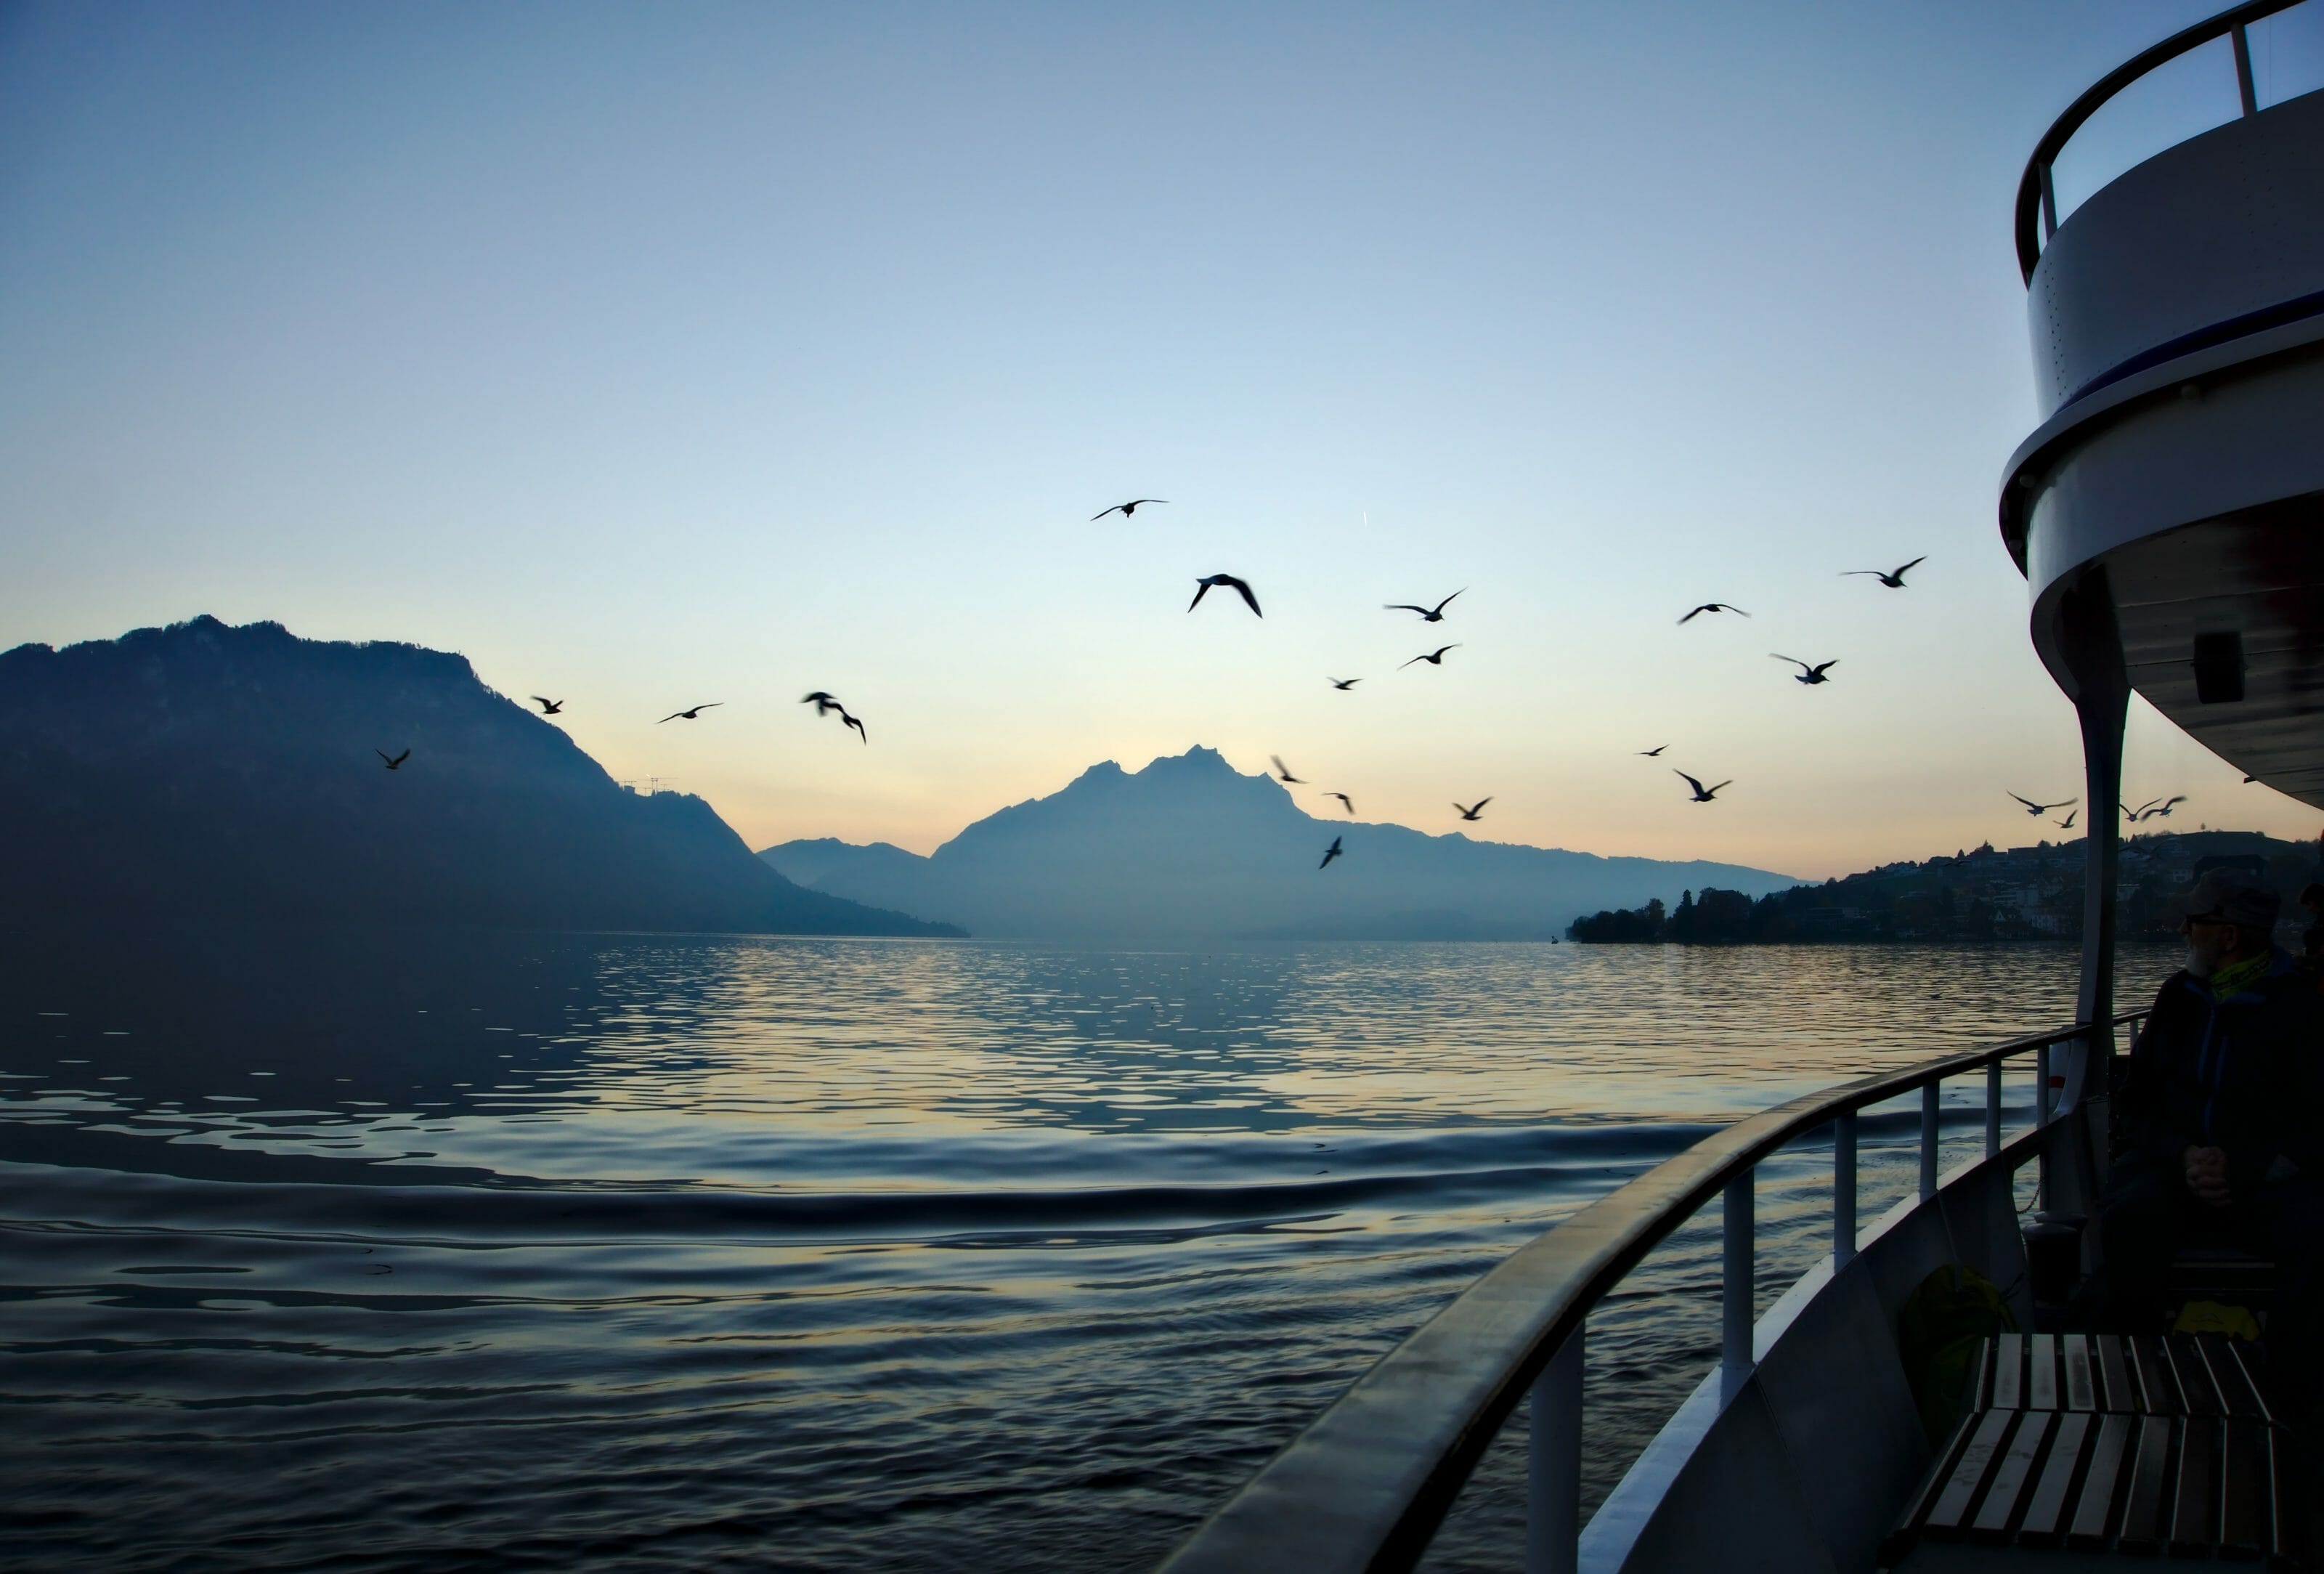 sunset time on the lake lucerne